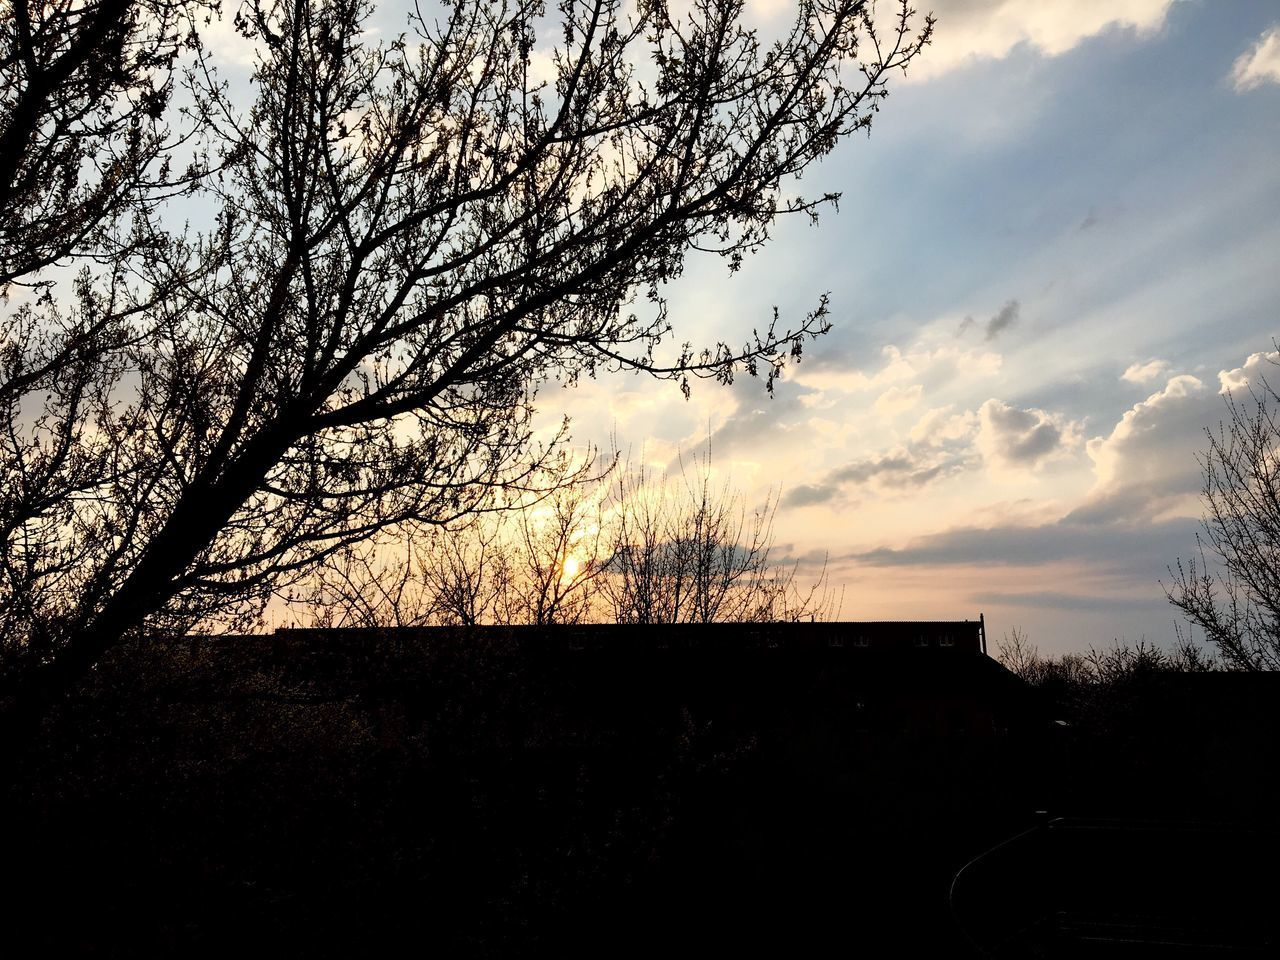 silhouette, sky, sunset, tree, cloud - sky, nature, beauty in nature, no people, bare tree, built structure, scenics, outdoors, tranquility, architecture, building exterior, day